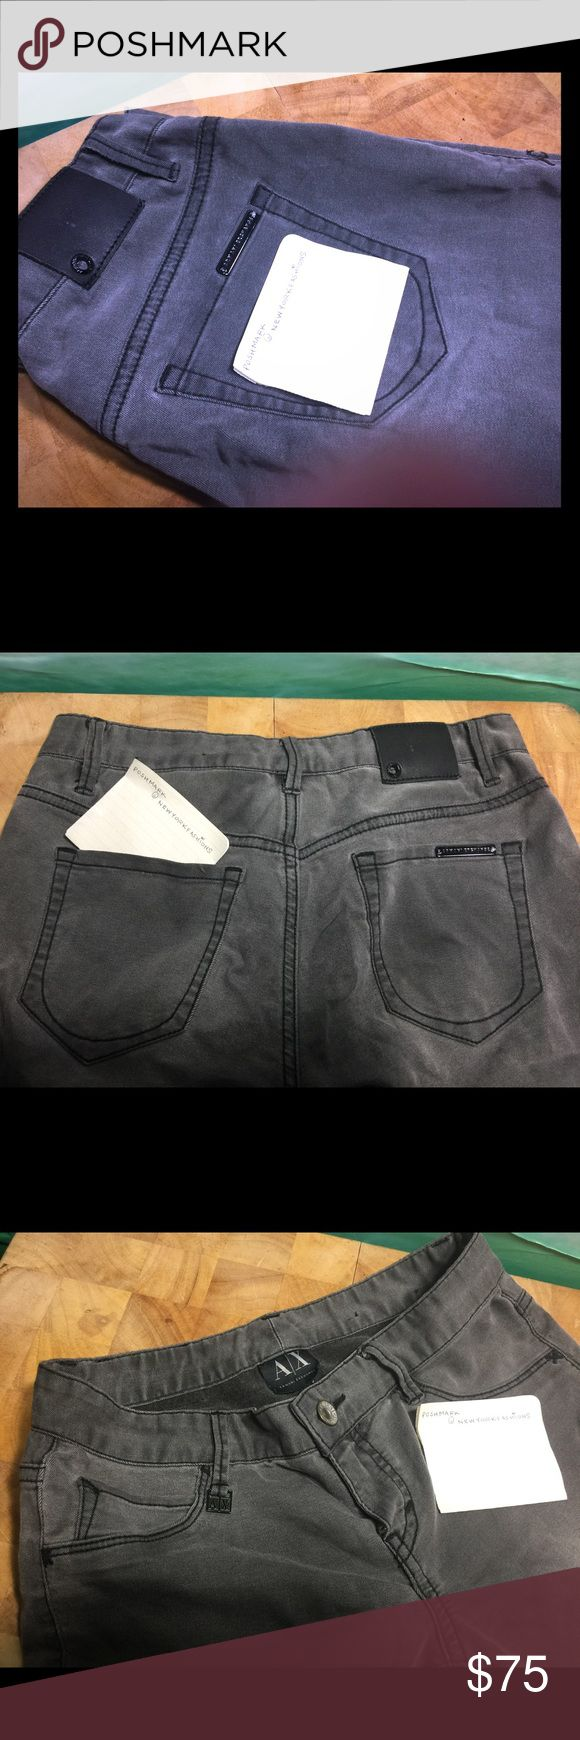 Armani Exchange Grey Jeans Worn once. Has a light stretch like a Jegging. Skinny legging. Good for daily outfits. Size 0 A/X Armani Exchange Jeans Skinny